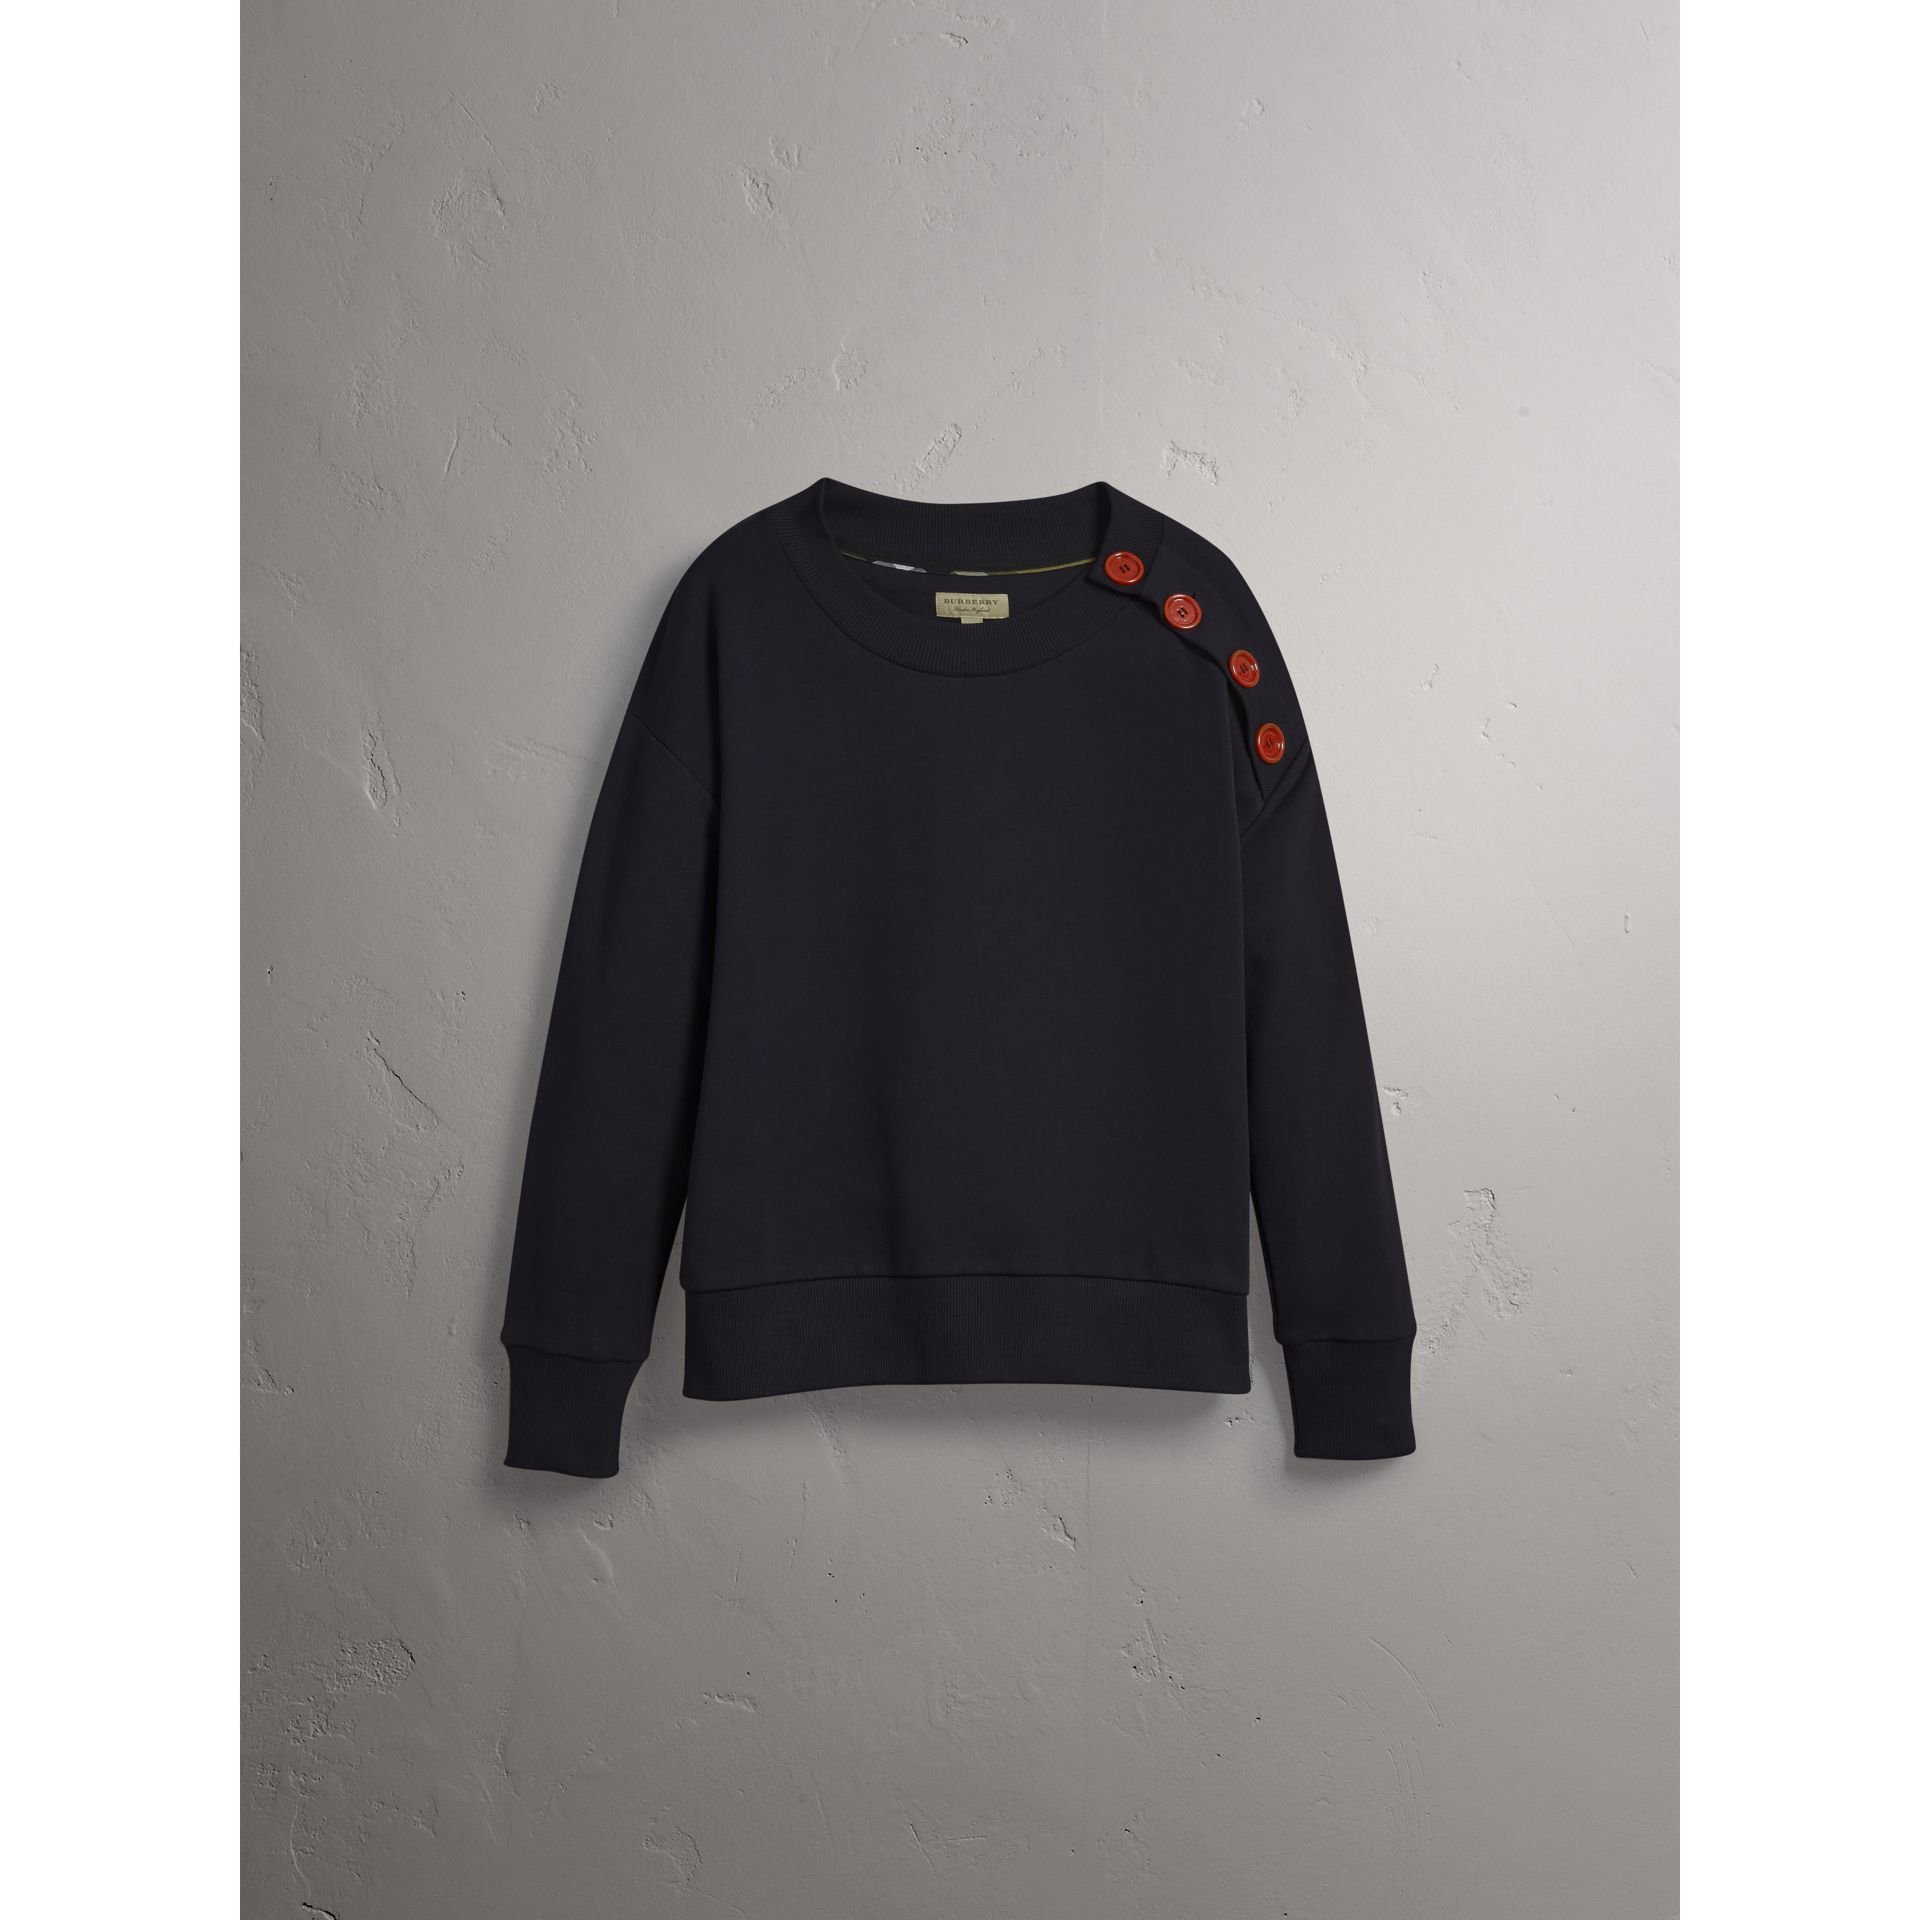 Resin Button Cotton Sweatshirt in Navy - Women | Burberry - gallery image 4